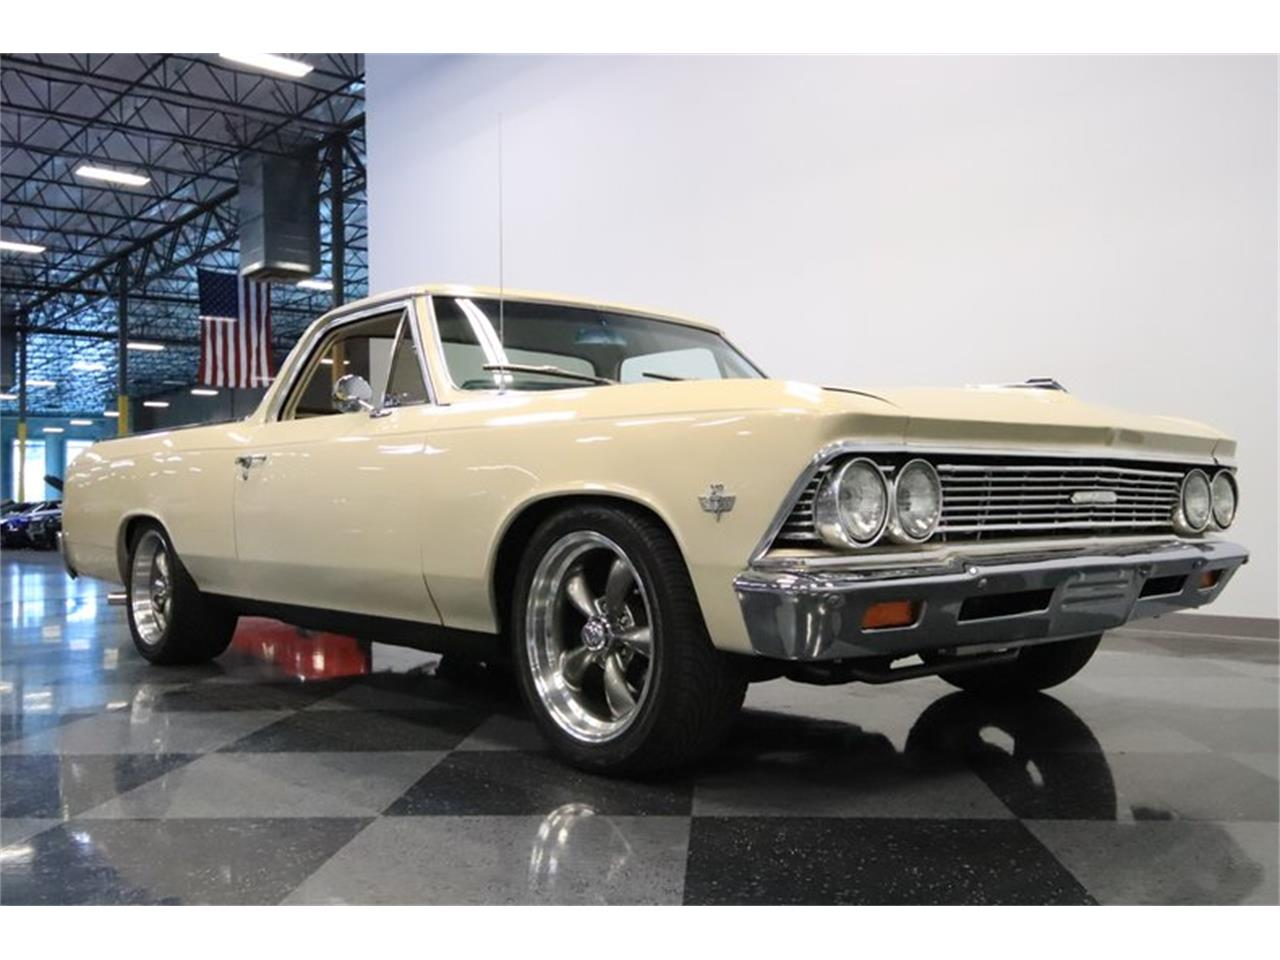 Large Picture of 1966 Chevrolet El Camino located in Arizona - $23,995.00 Offered by Streetside Classics - Phoenix - QAWZ